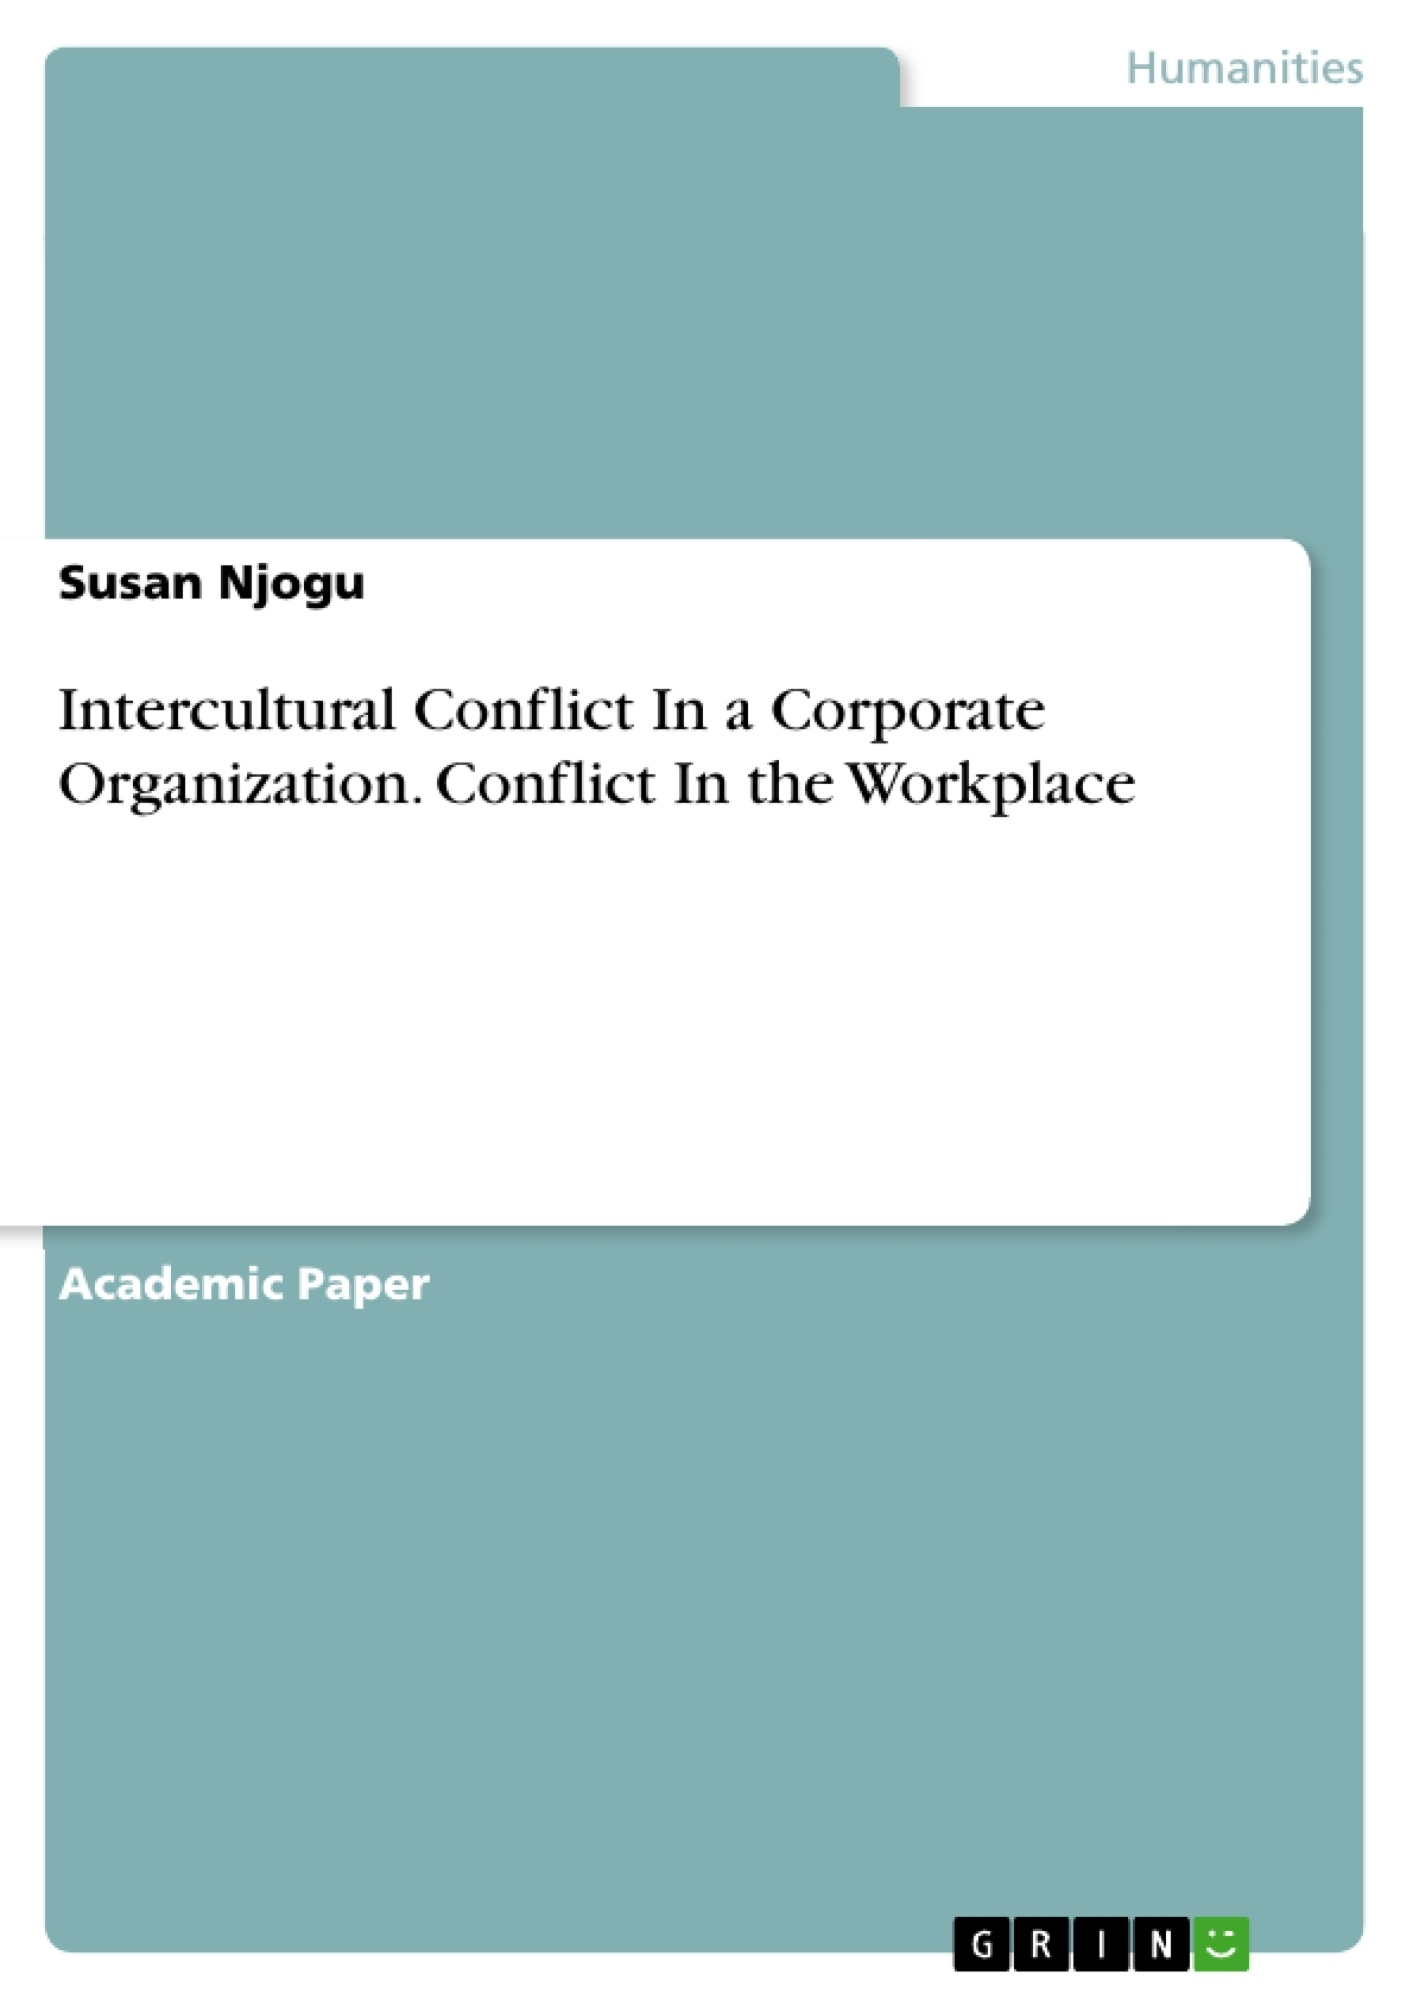 Title: Intercultural Conflict In a Corporate Organization. Conflict In the Workplace